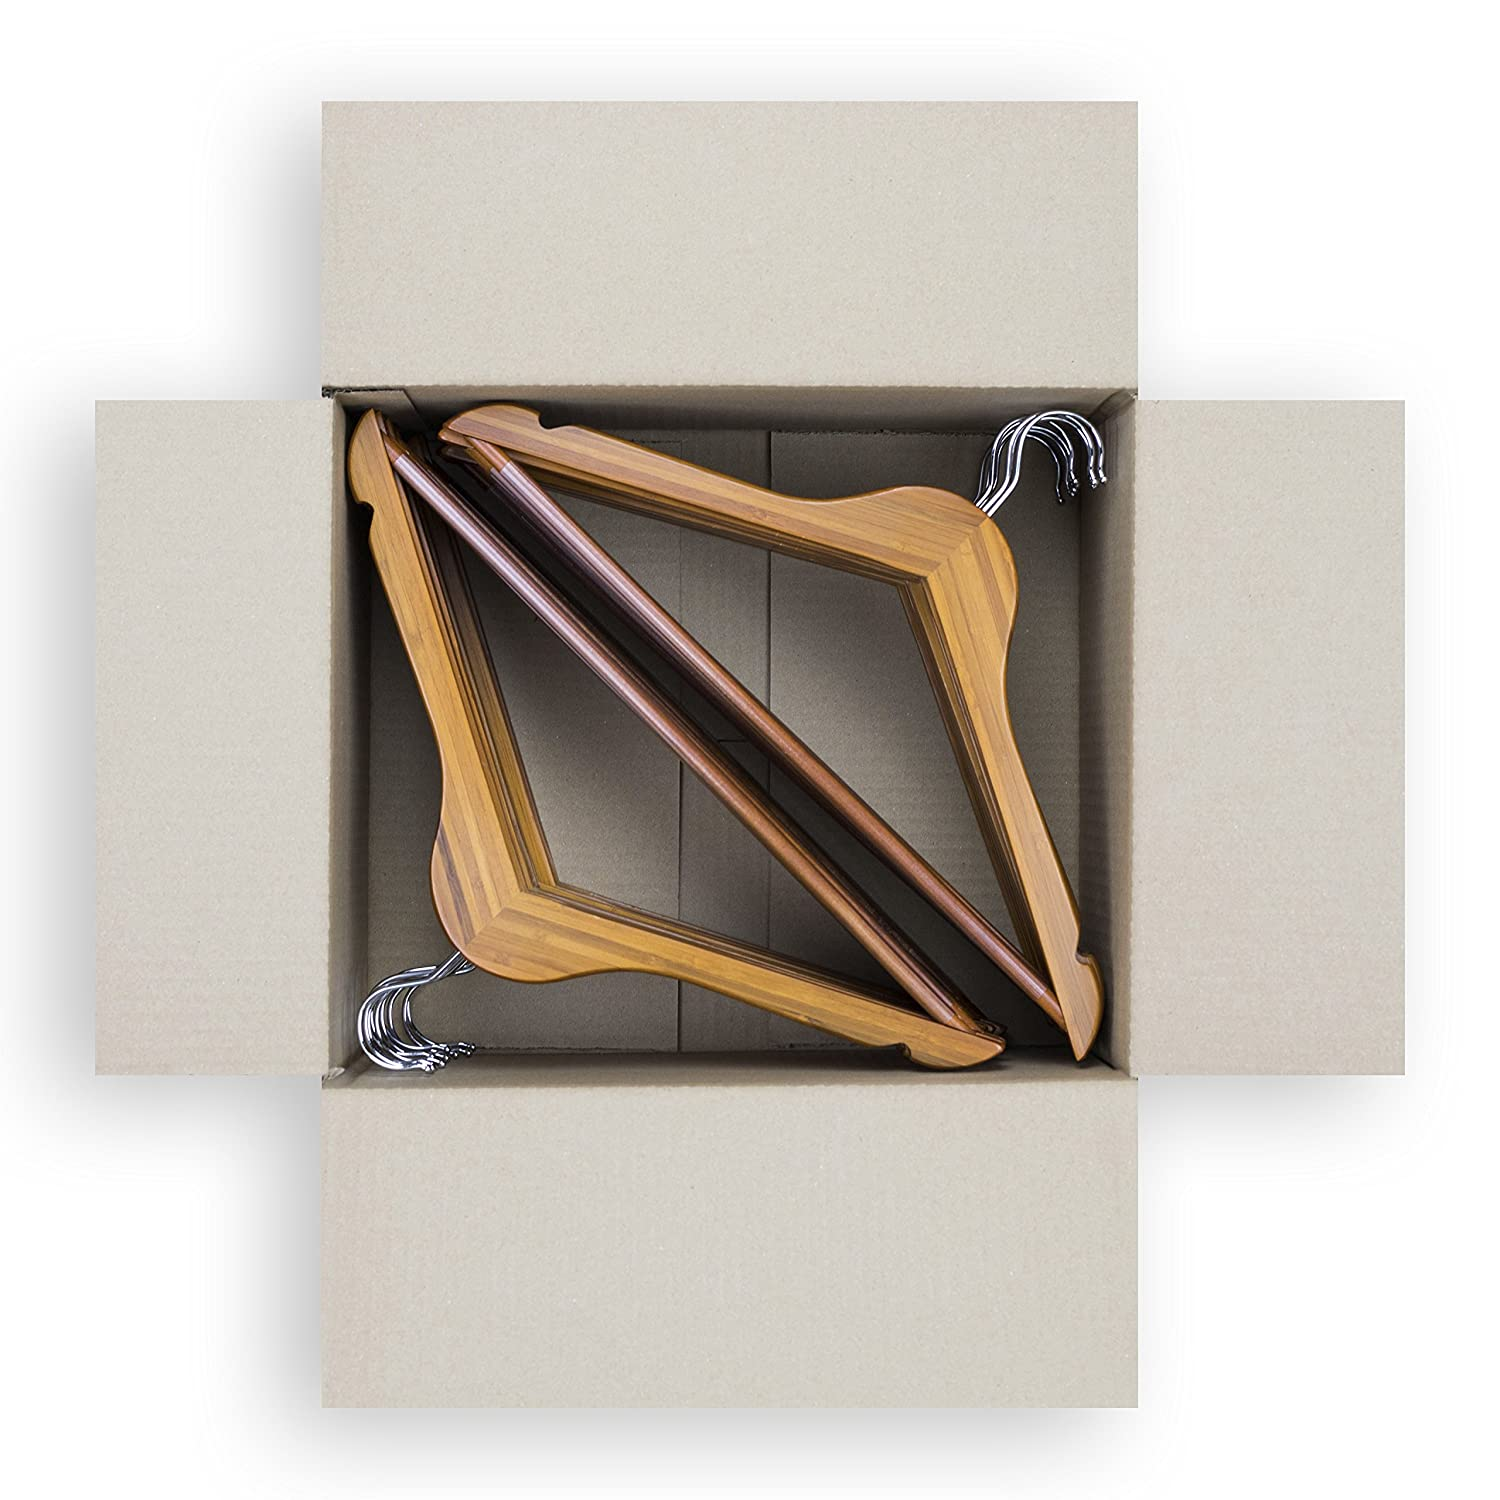 Neaties Bamboo Cherry Wood Hangers with Notches and Non-Slip Bar 24pk